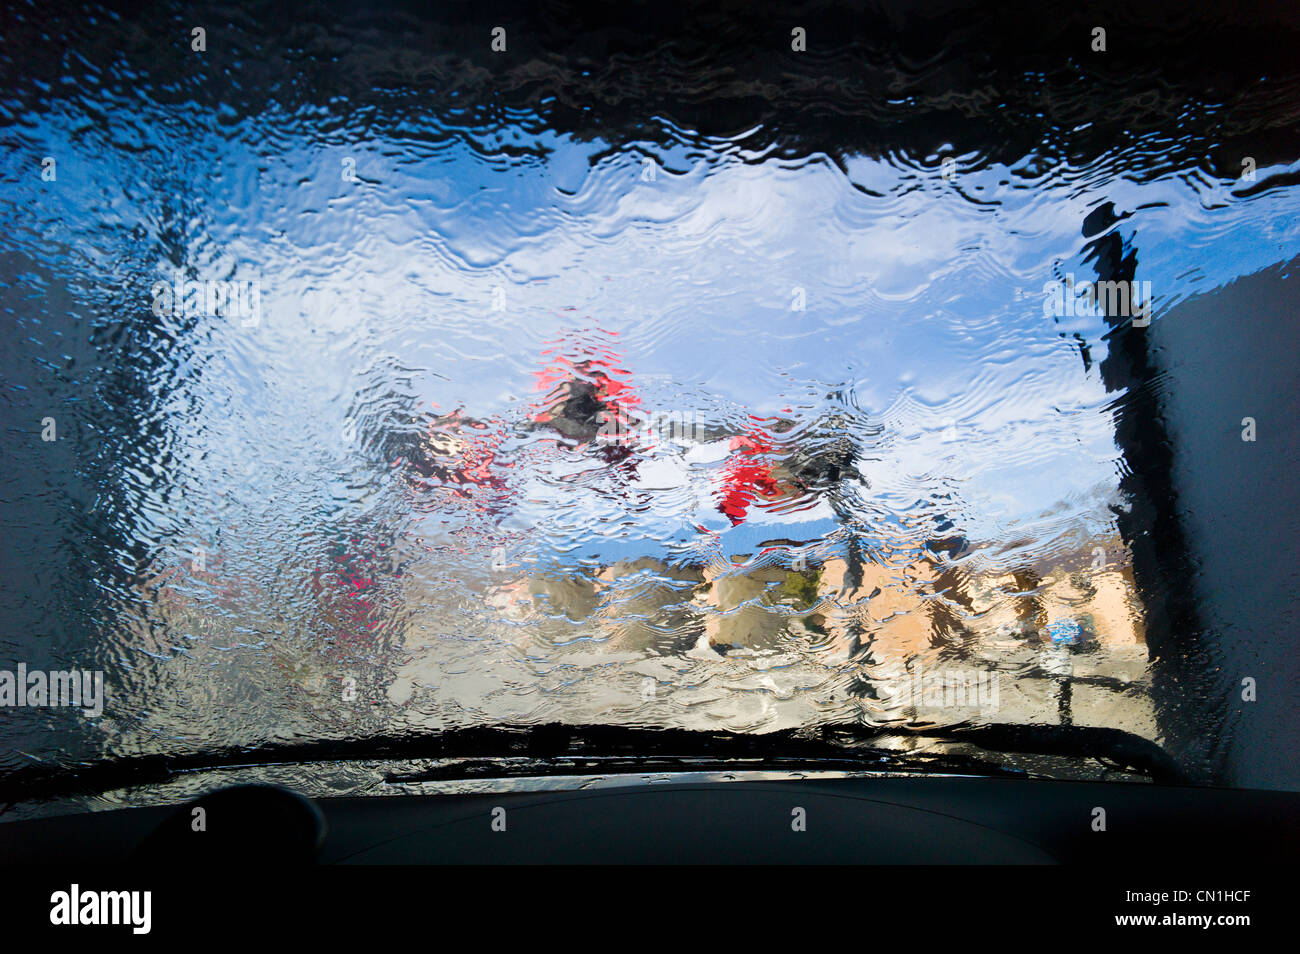 View through the windshield of an automobile in an automated car wash. - Stock Image